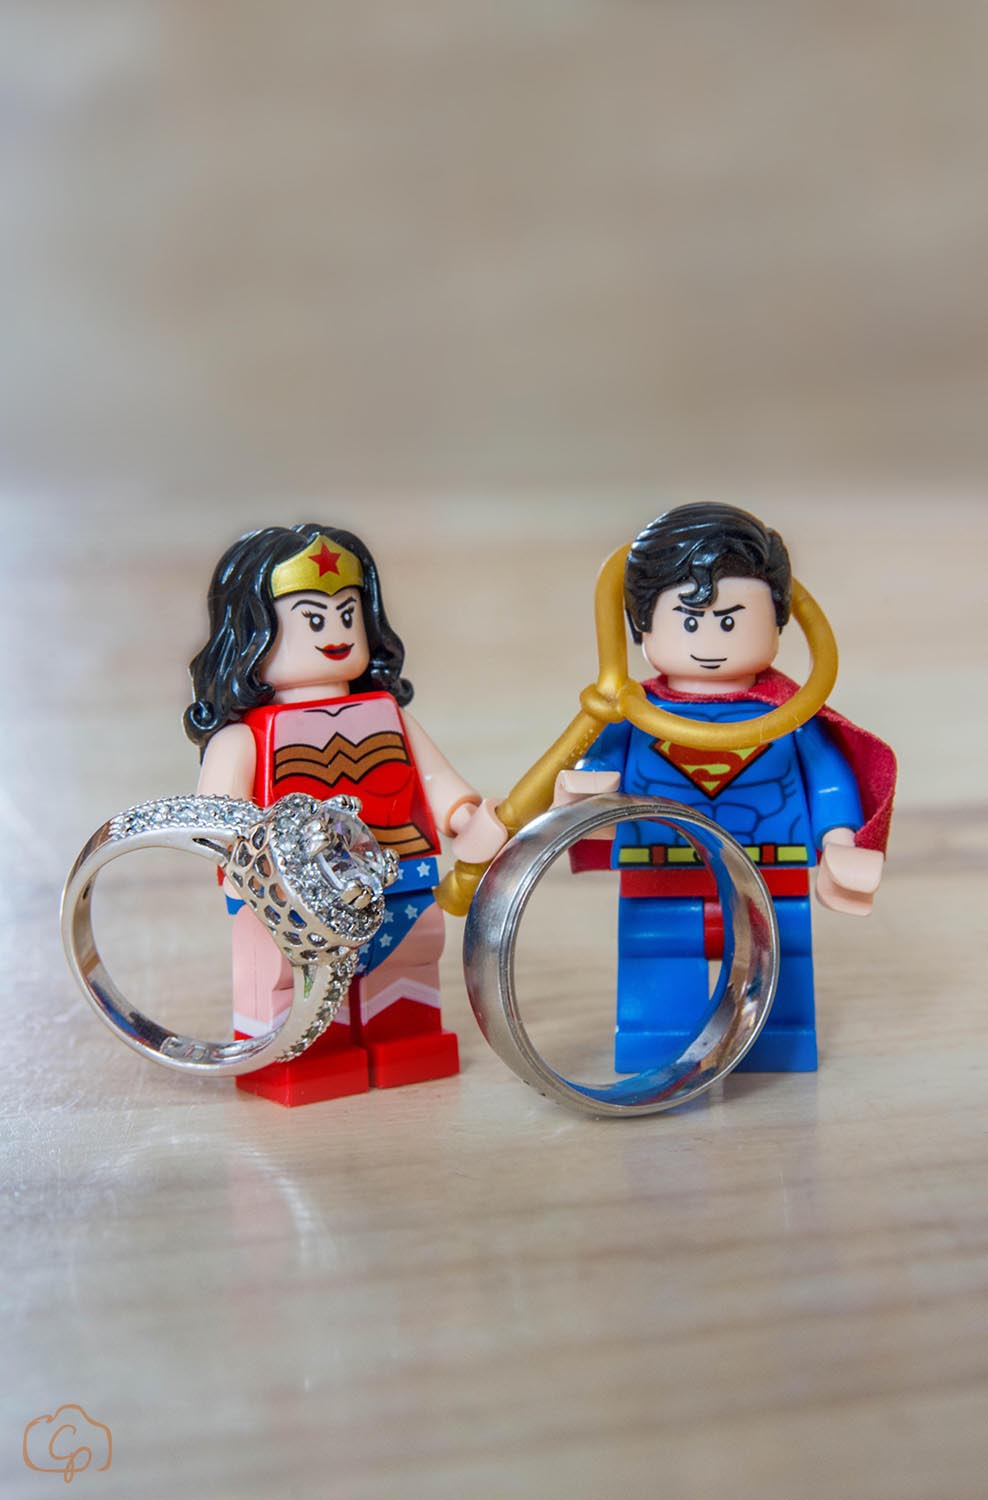 Lego Super heroes holding the wedding rings | Coppersmith Photography | ring detail shots